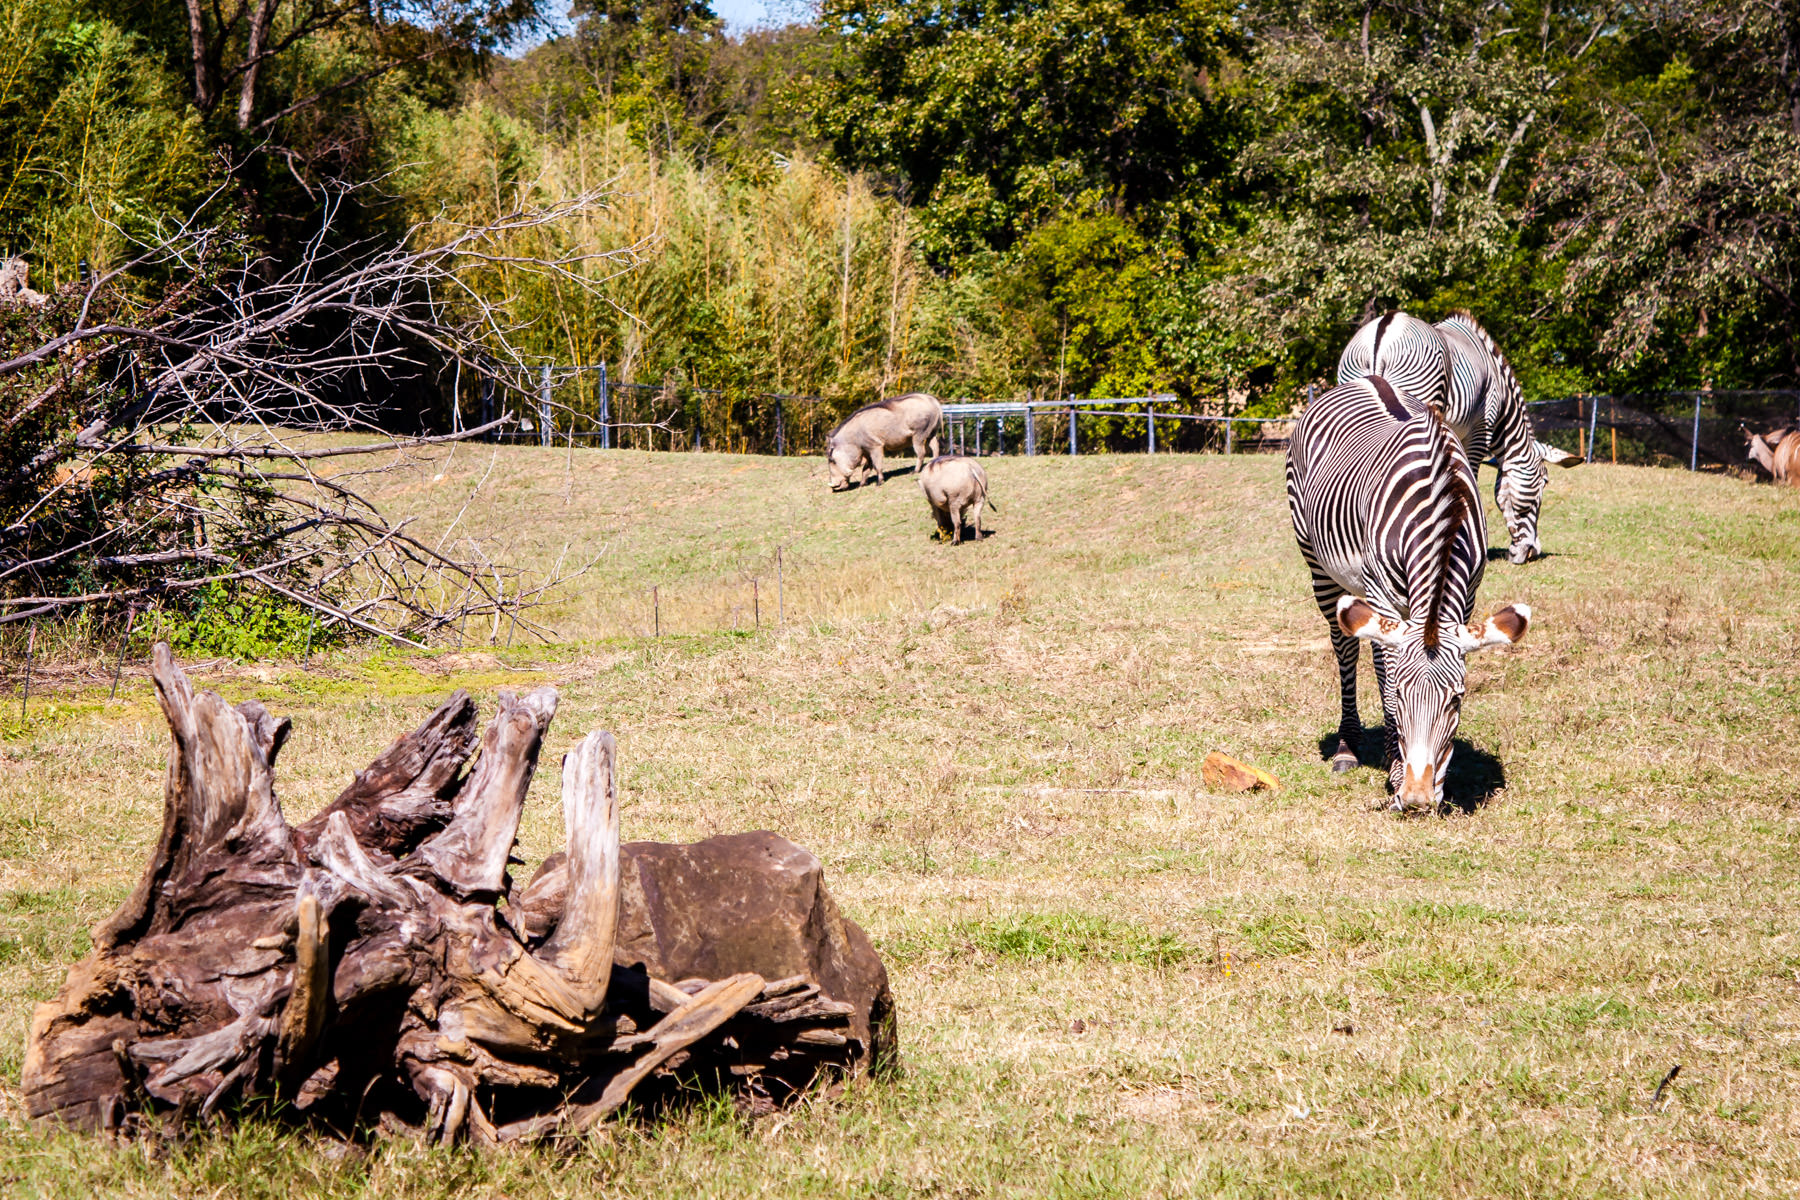 Warthogs and zebras feeding on grass at Tyler, Texas' Caldwell Zoo.